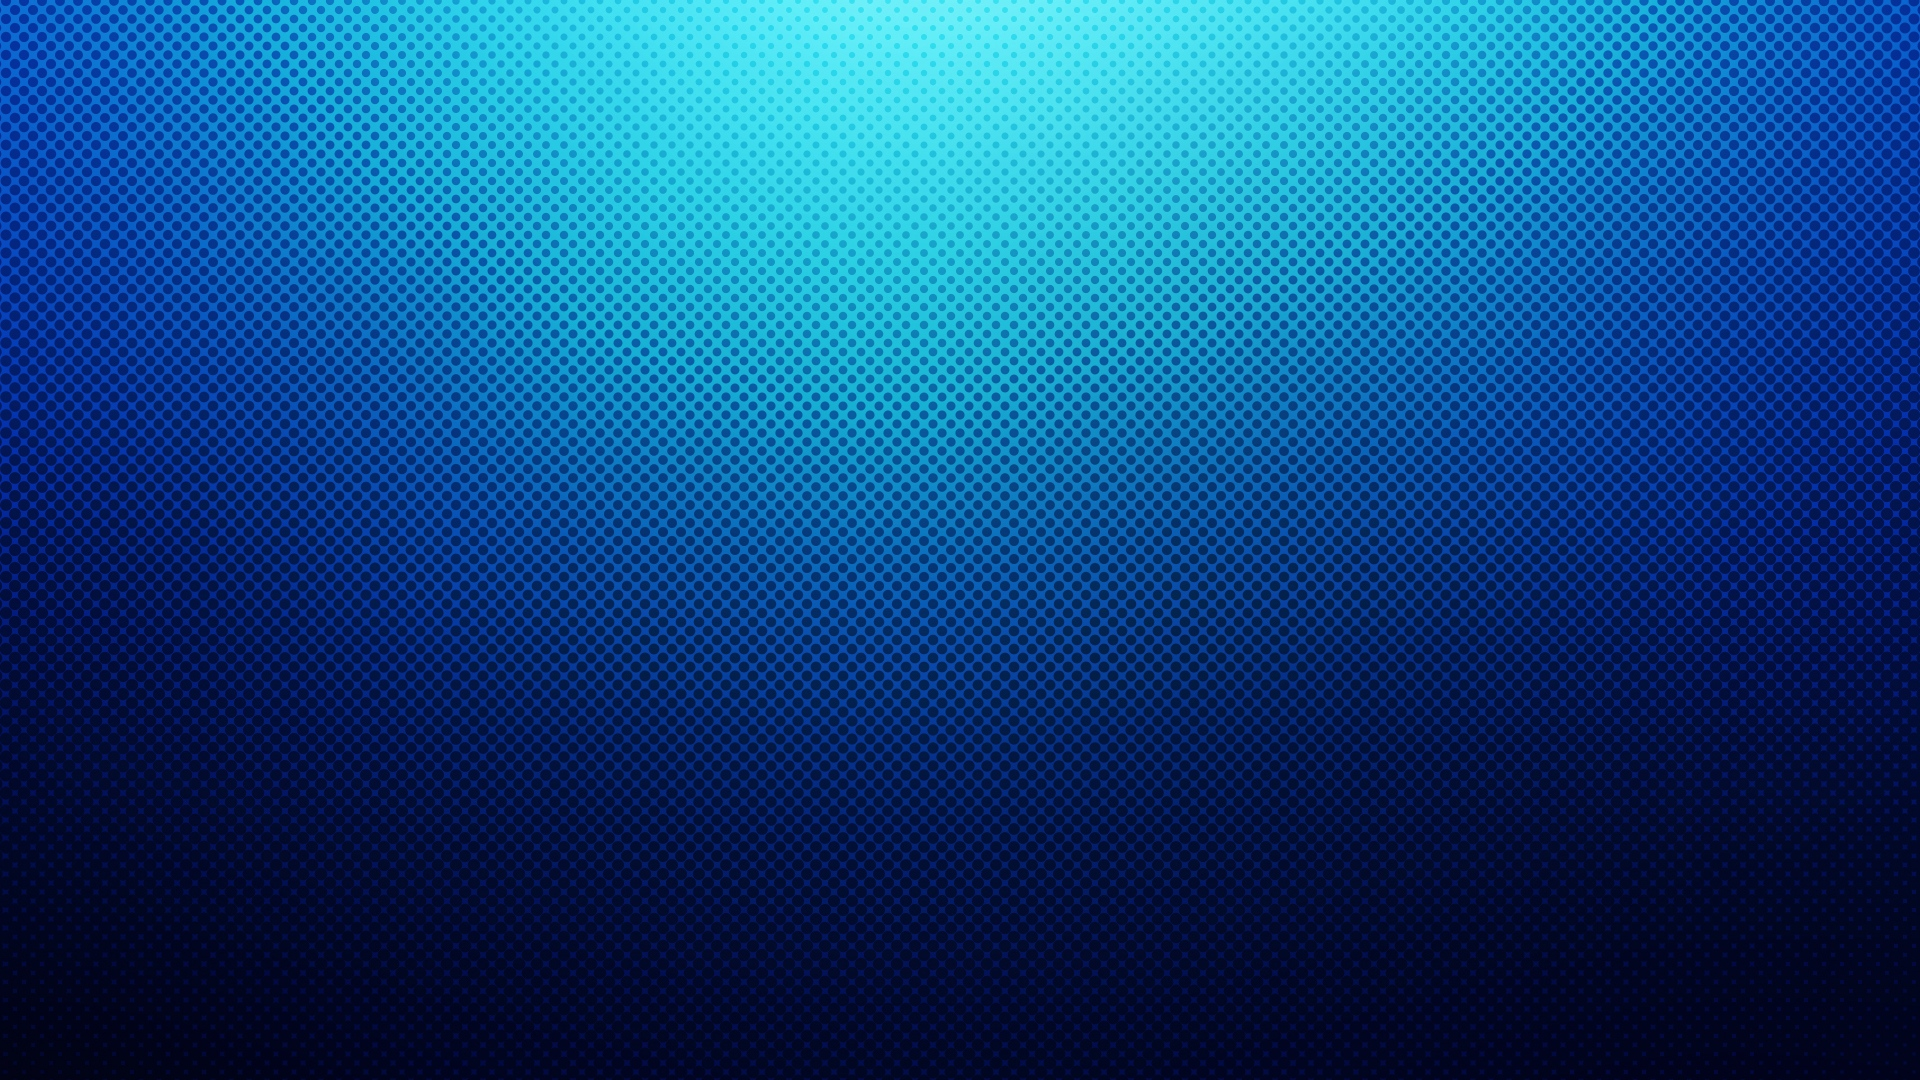 Texture Blue Background Shadow Wallpaper Background Full HD 1080p 1920x1080